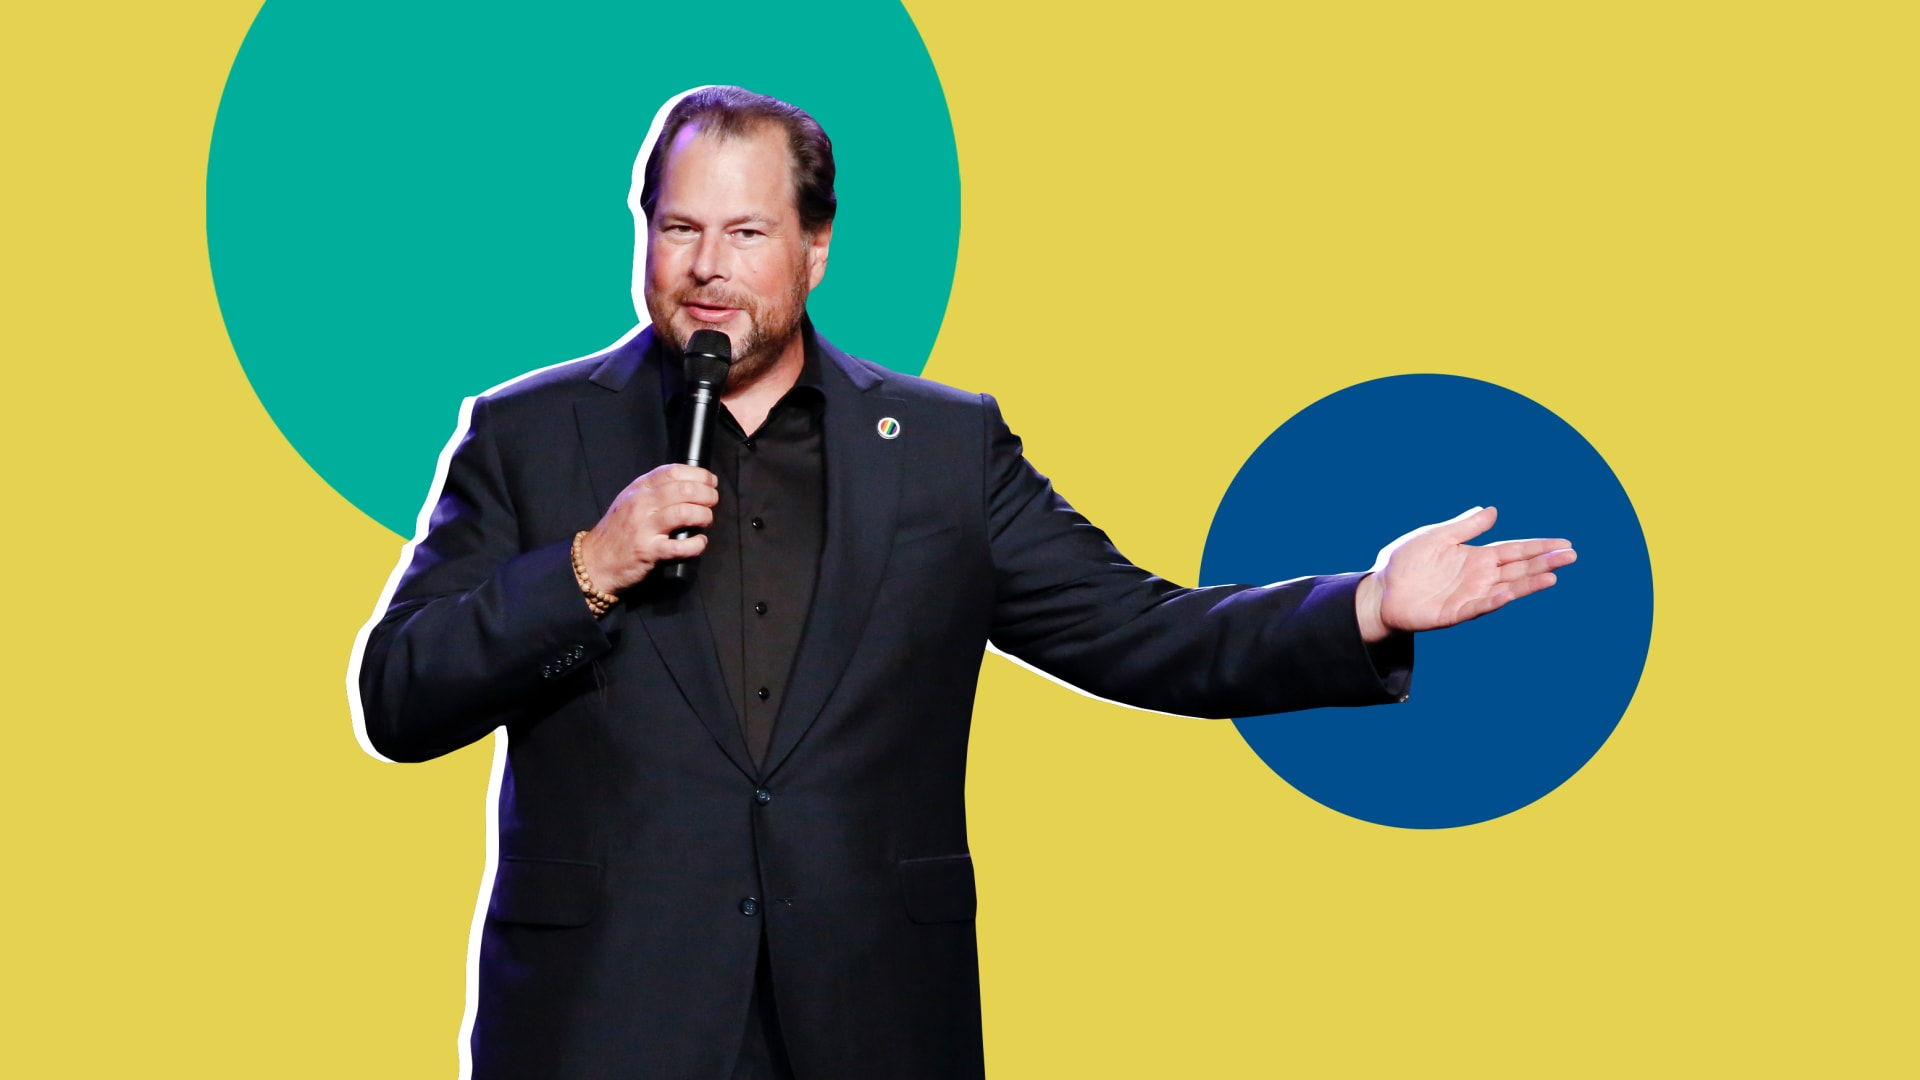 The Essential Communication Skills Marc Benioff Used to Build Salesforce